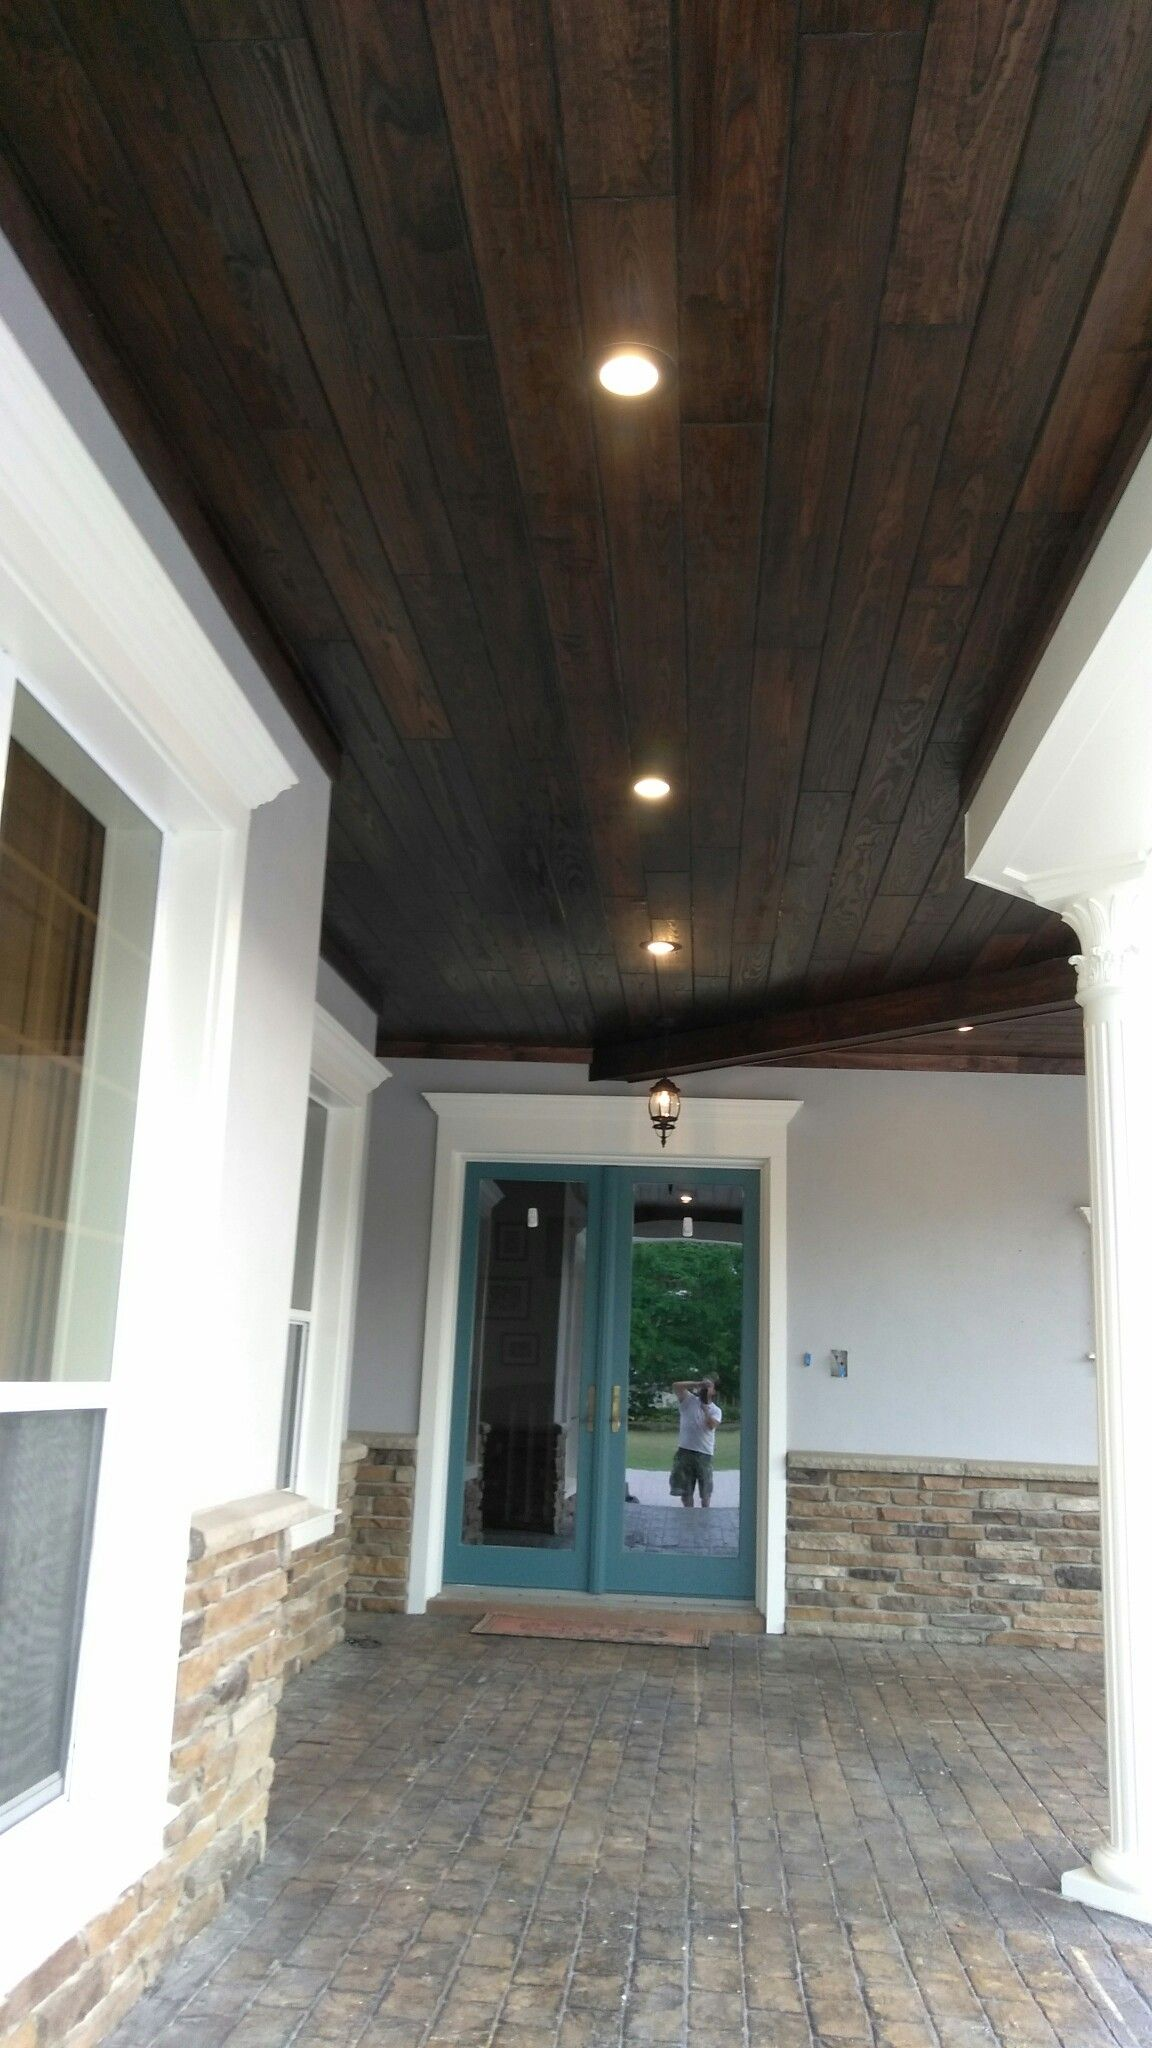 Stained Tounge And Groove Exterior Wood Porch Ceiling Porch Ceiling House Exterior House With Porch